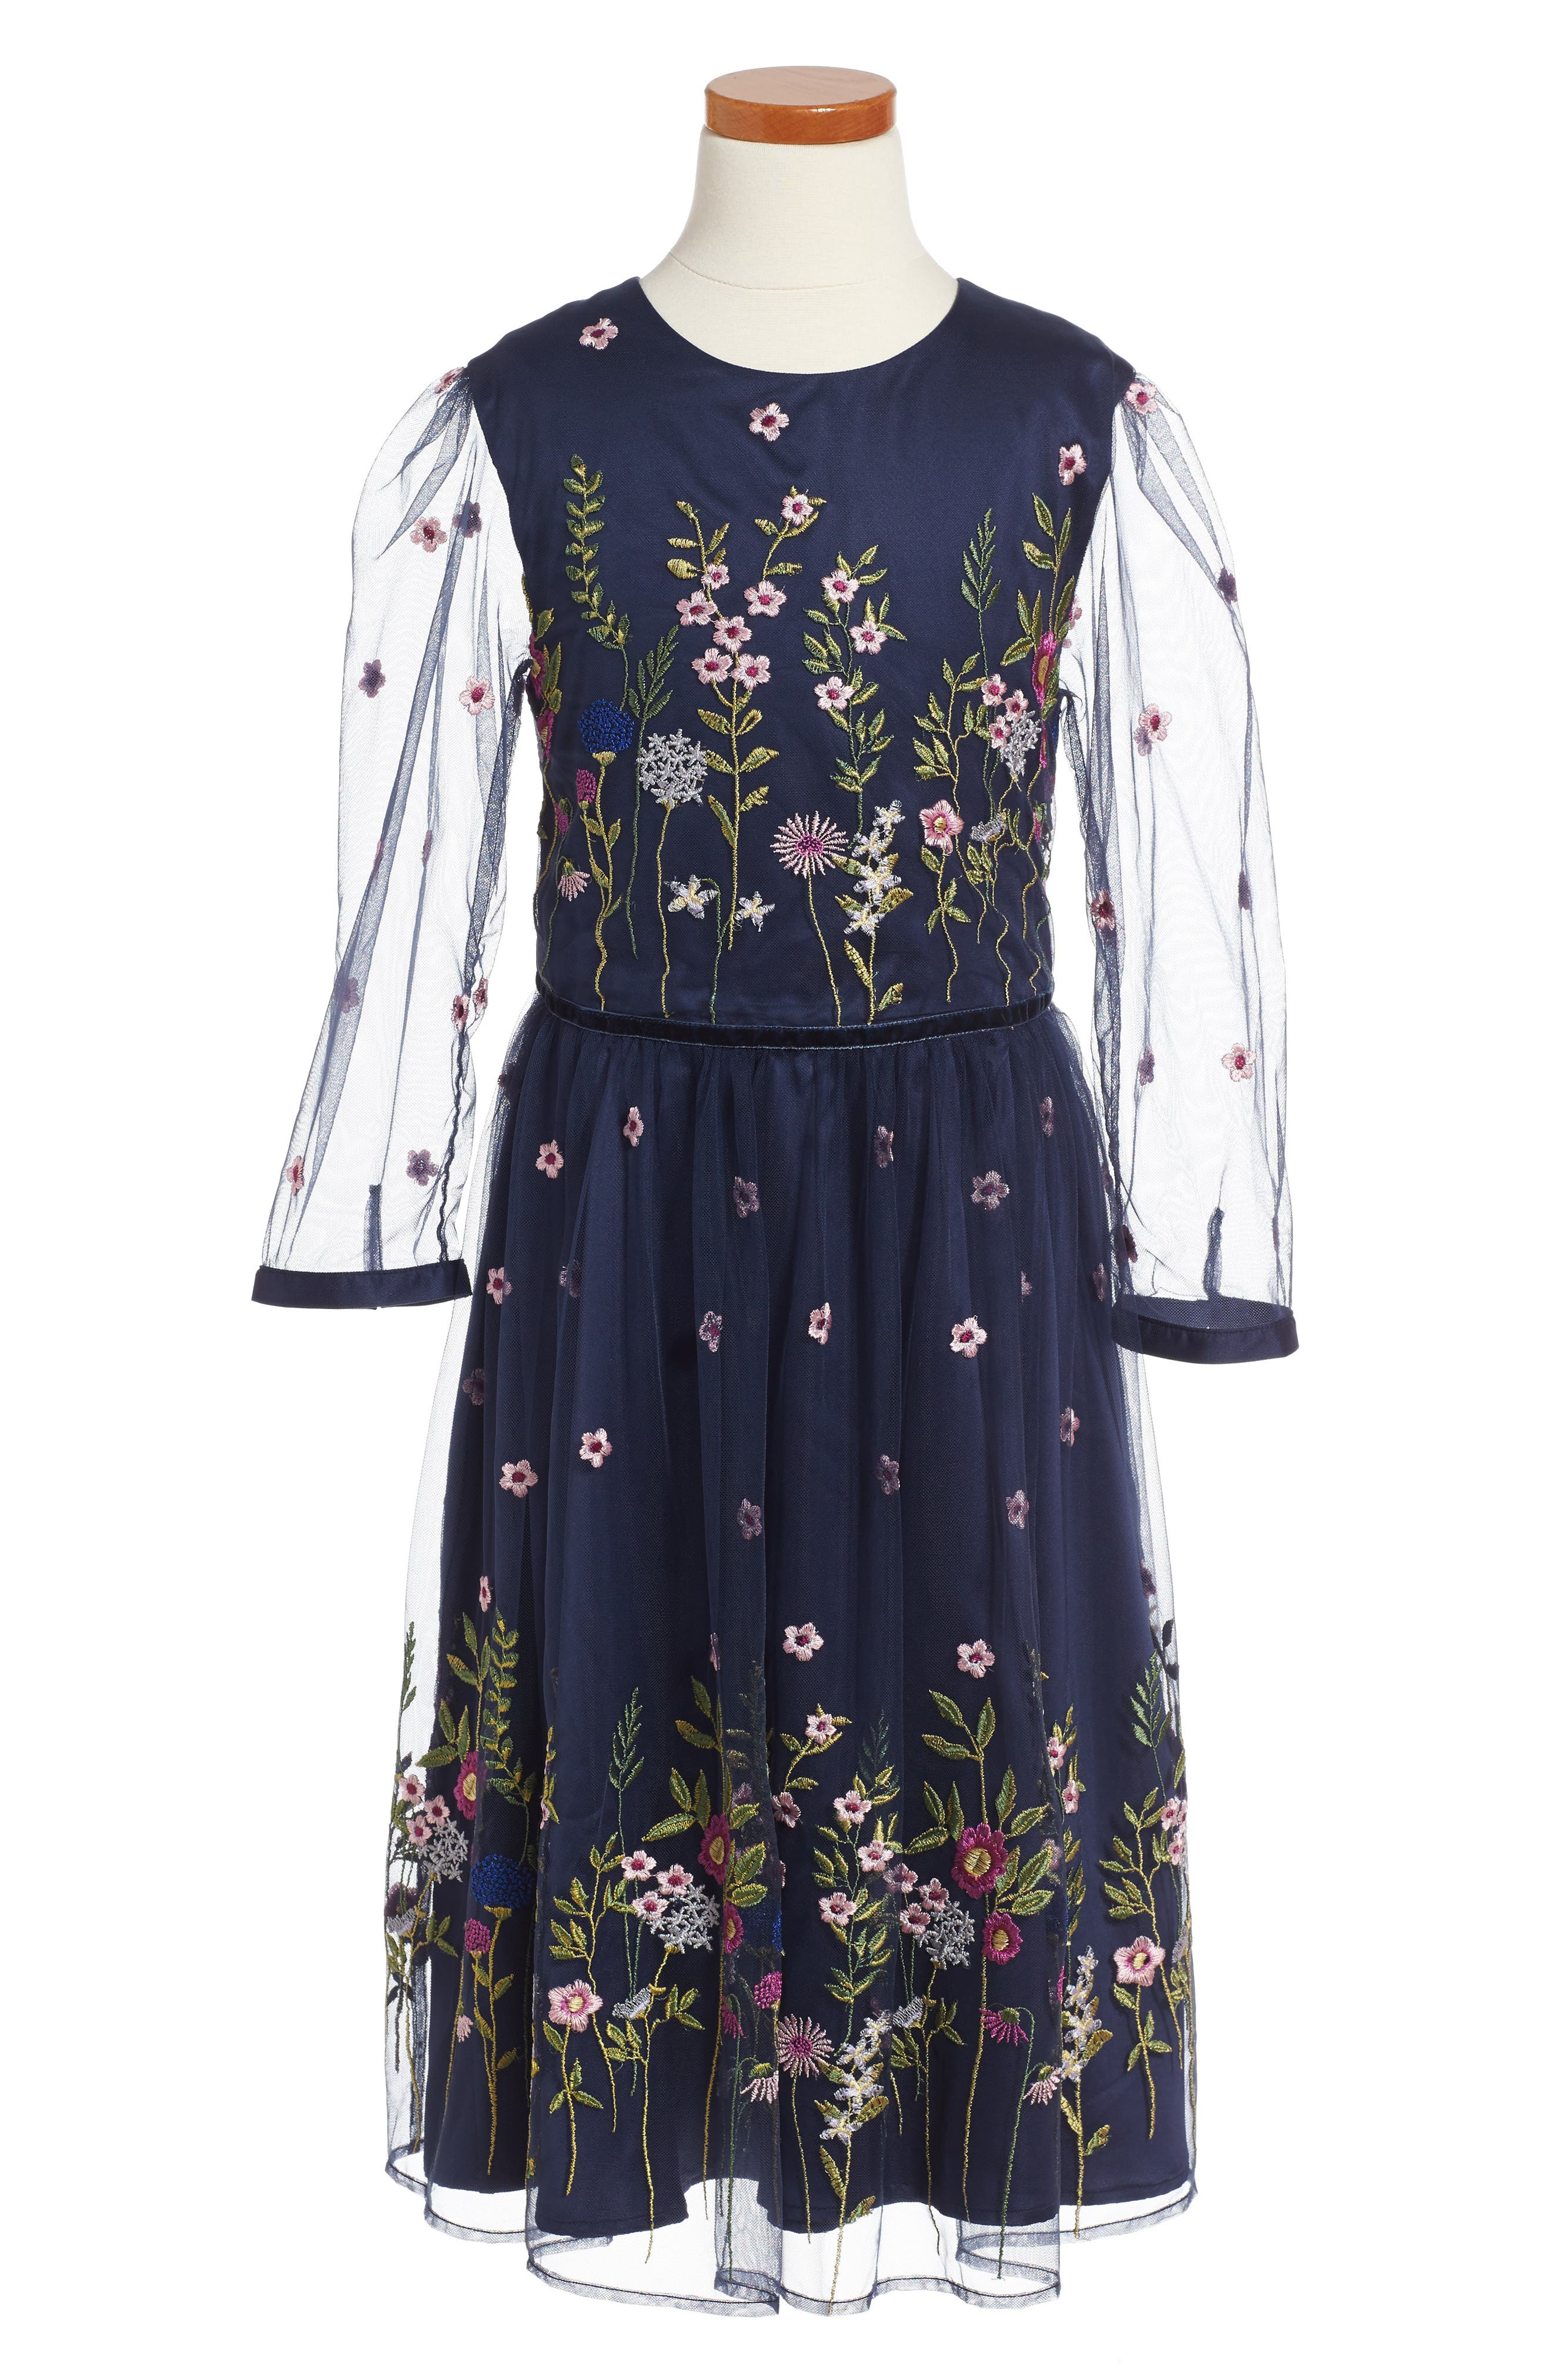 Main Image - Oh My Meadow Embroidered Dress (Little Girls & Big Girls)